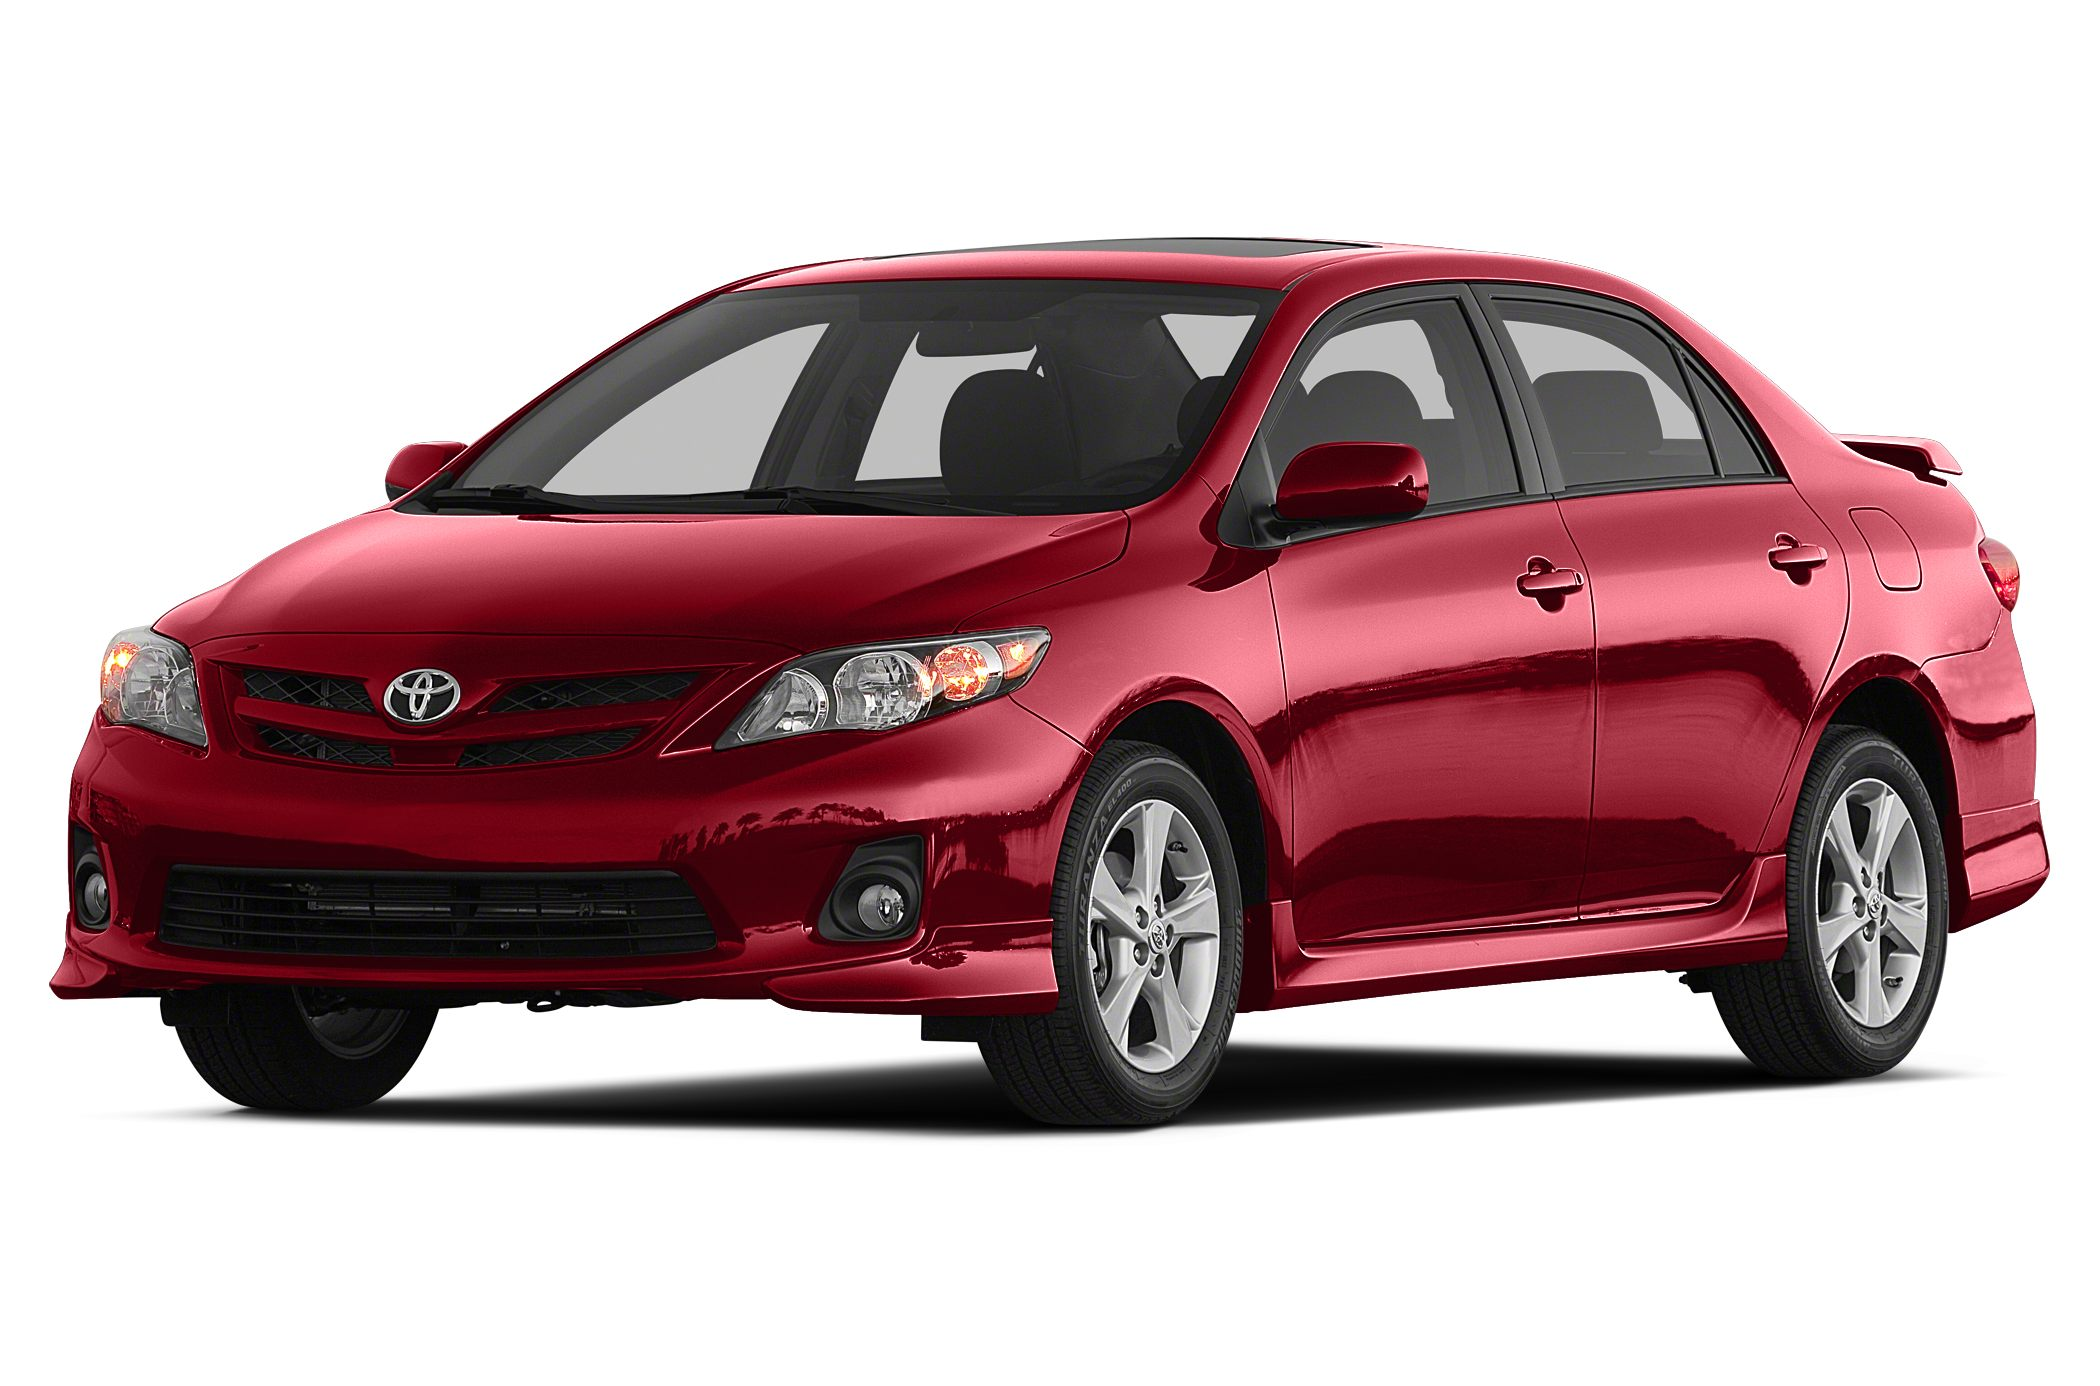 2012 Toyota Corolla S 4dr Sedan Pricing and Options